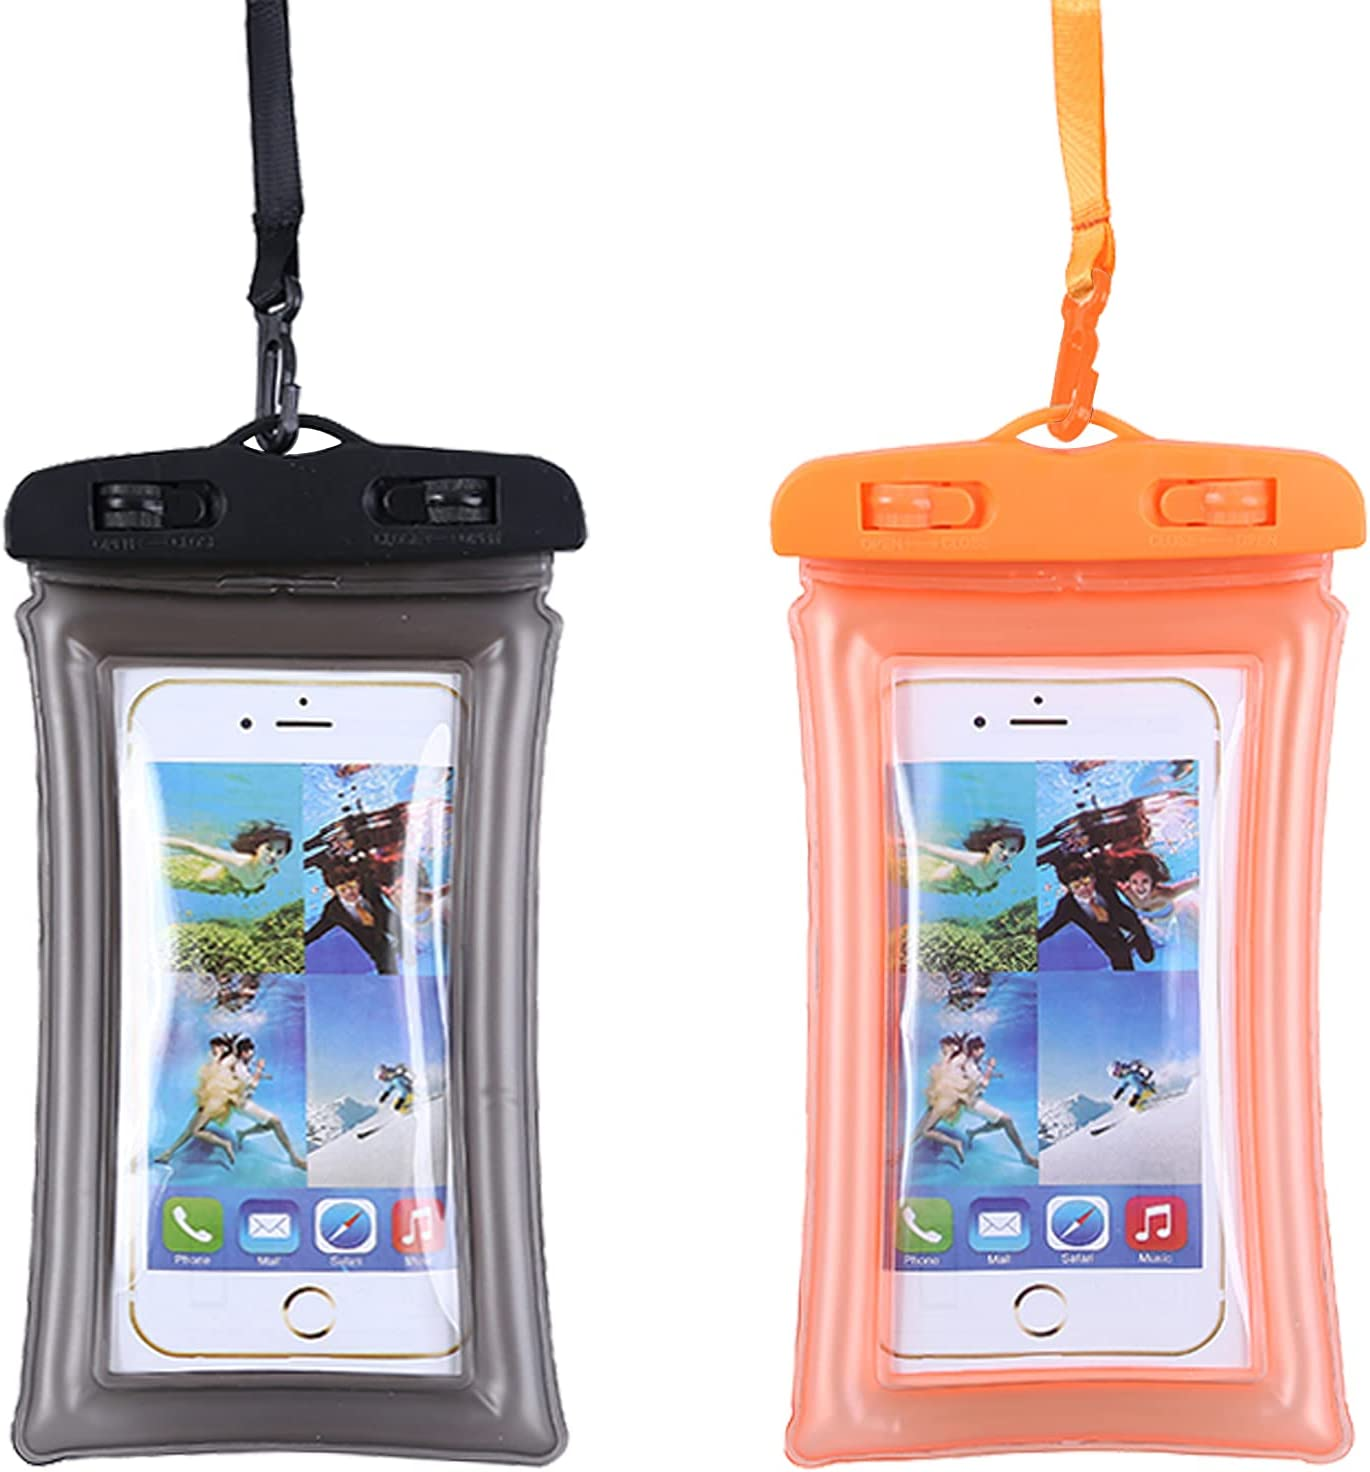 """Waterproof Phone Pouch Floating, TIGERMILLION 2-Pack Floating Cell Phone Dry Bag Up to 6.5"""", IPX8 Phone Waterproof Bag Compatible with iPhone 12/12 Pro/11/11 Pro/X, Galaxy S9/S10, Google Pixel, LG…"""